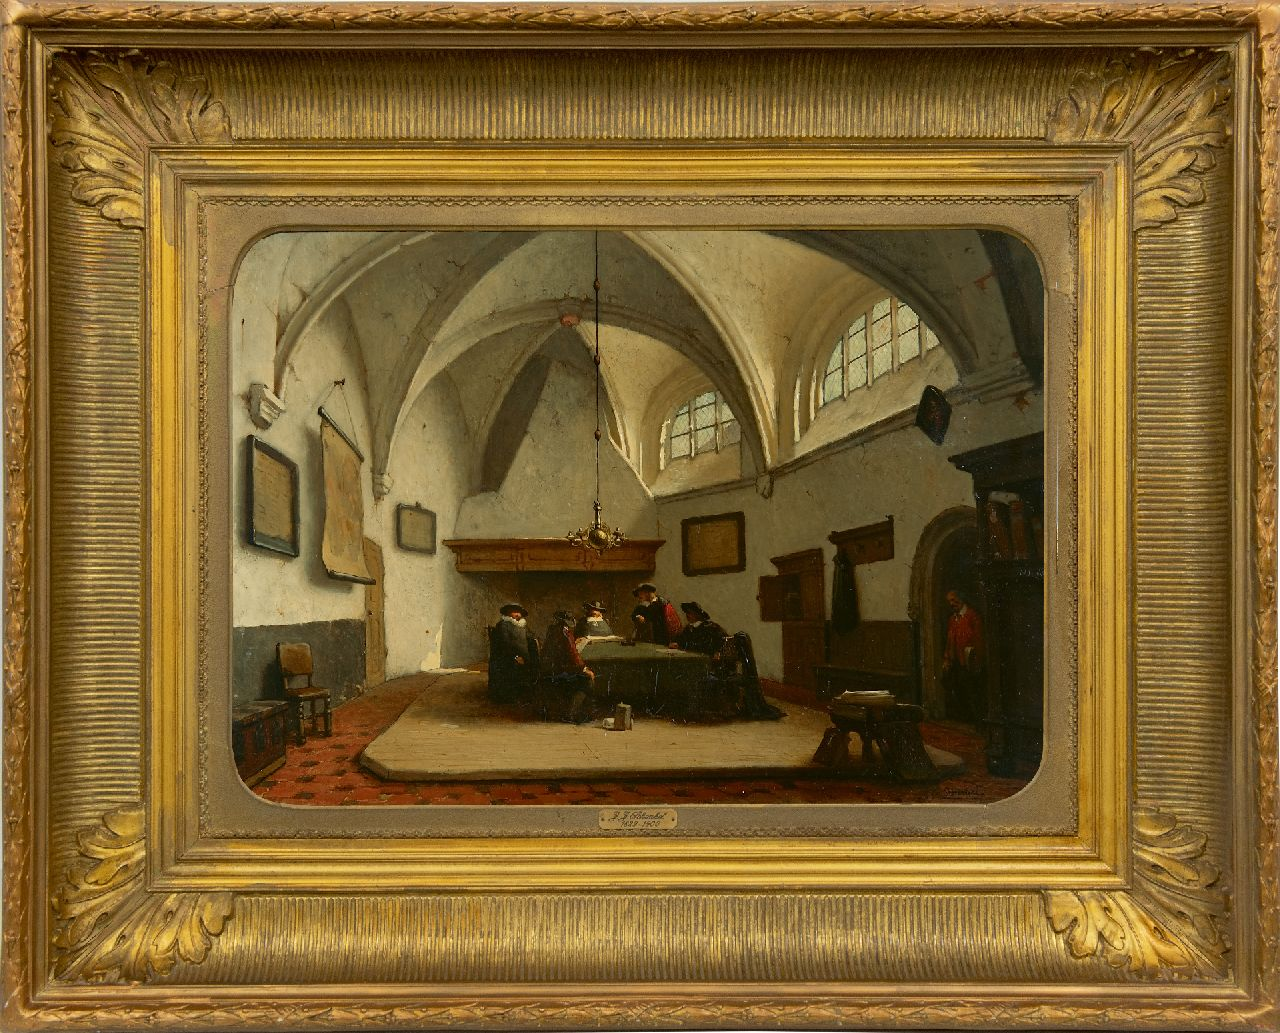 Schenkel J.J.  | Jan Jacob Schenkel, Aldermen gathered in the consistory room of the Grote Kerk, Breda, oil on panel 39.4 x 55.8 cm, signed l.r.